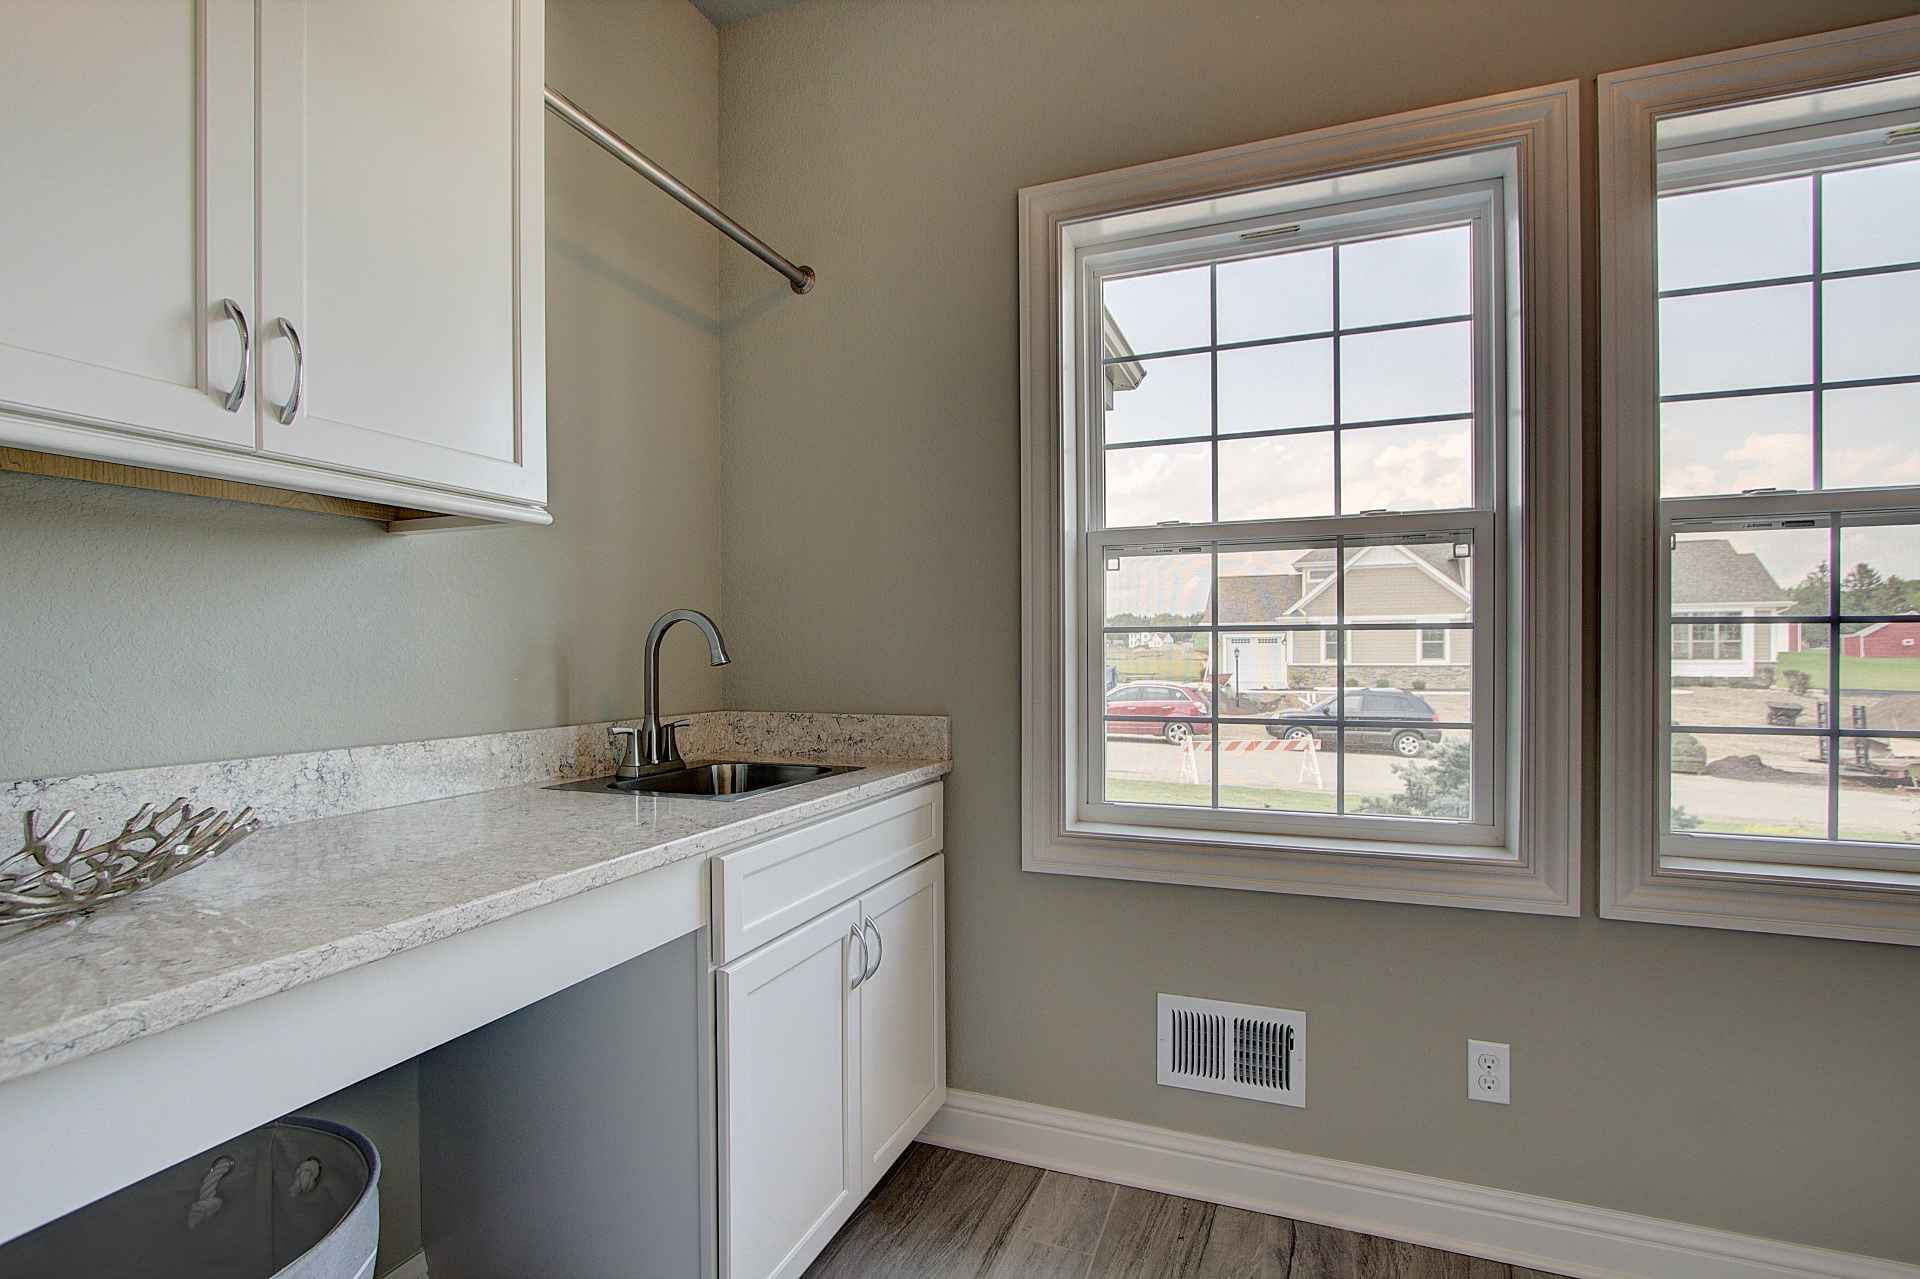 Laundry Room with Hanging /Folding Area